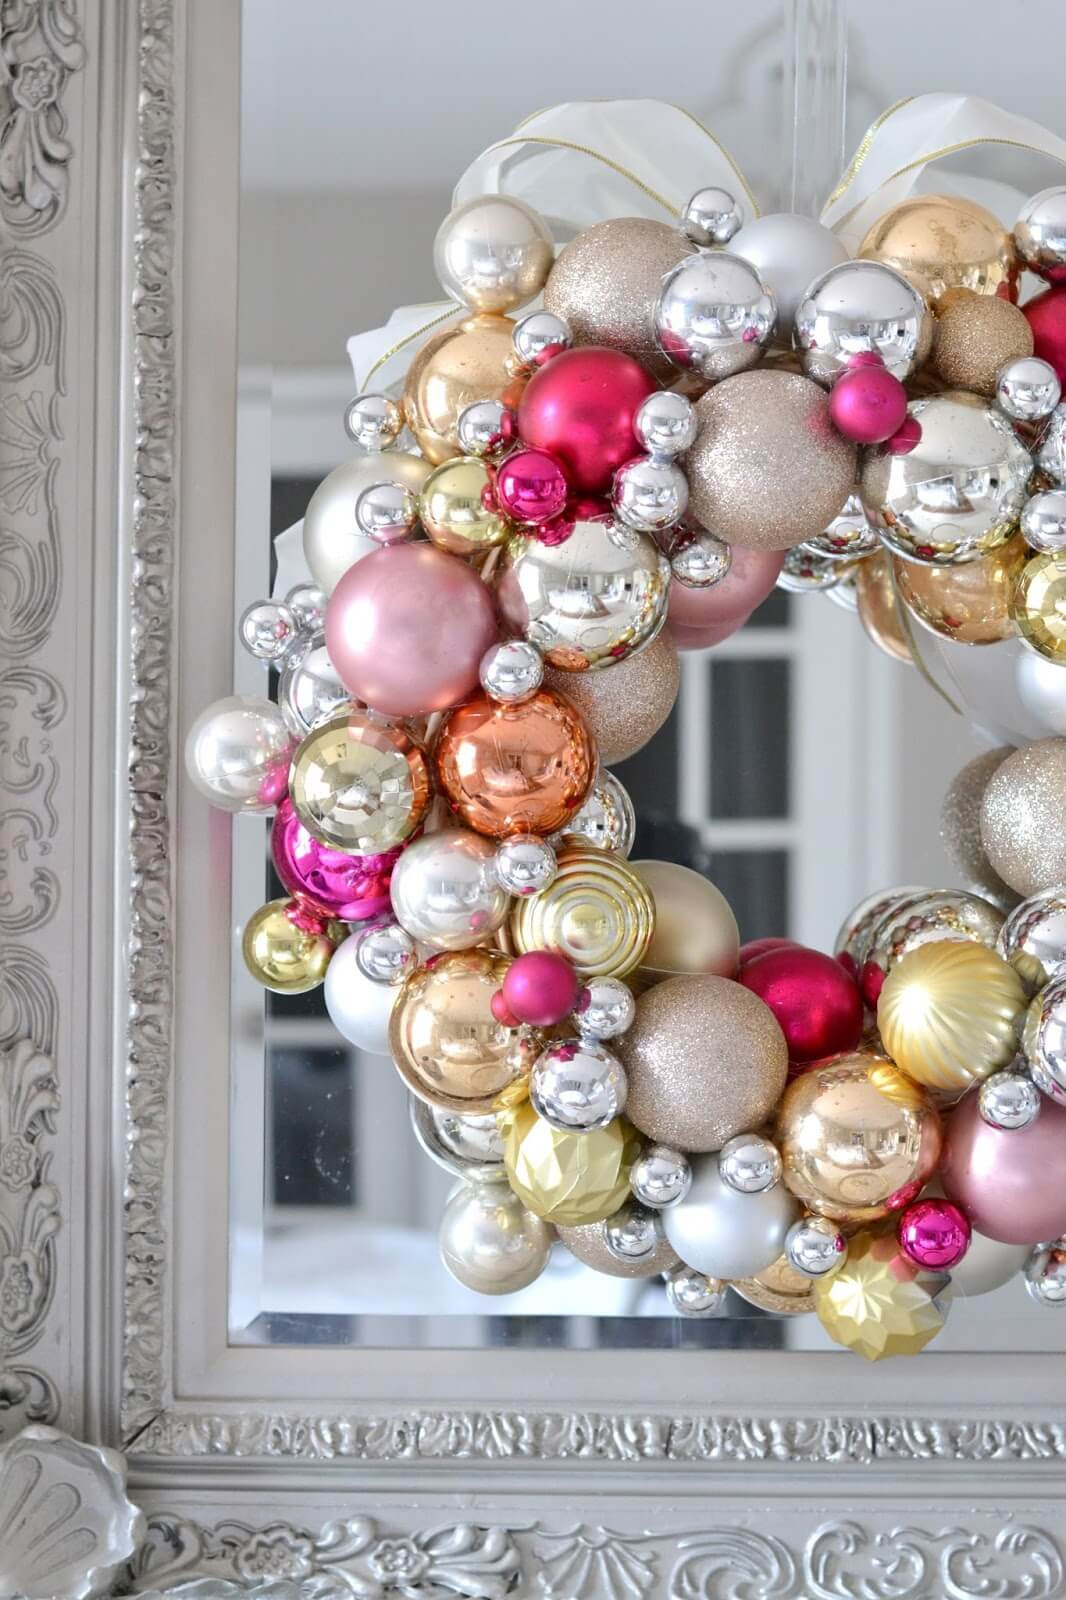 Best ideas about DIY Ornament Wreath . Save or Pin 10 Ways to Repurpose Christmas Ornaments Dukes and Duchesses Now.